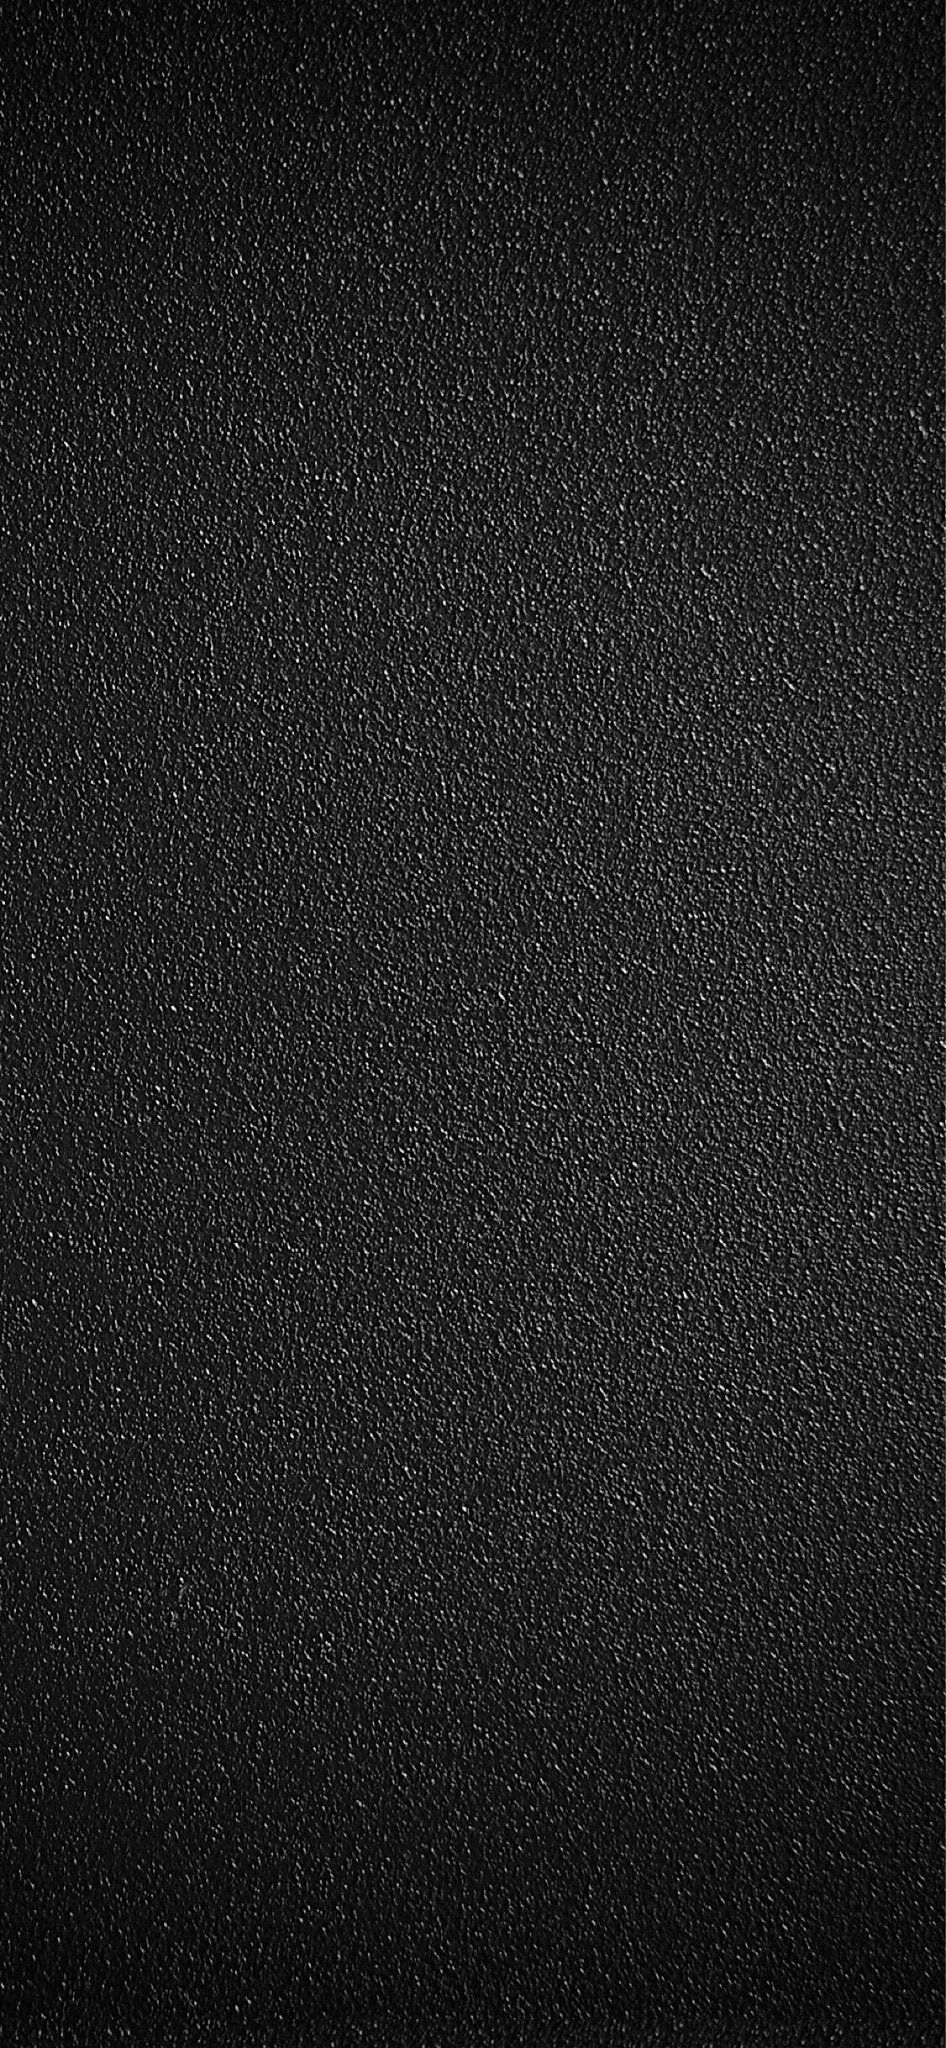 Pin by YeunSung Roh on iPhone X wallpapers   Black ...